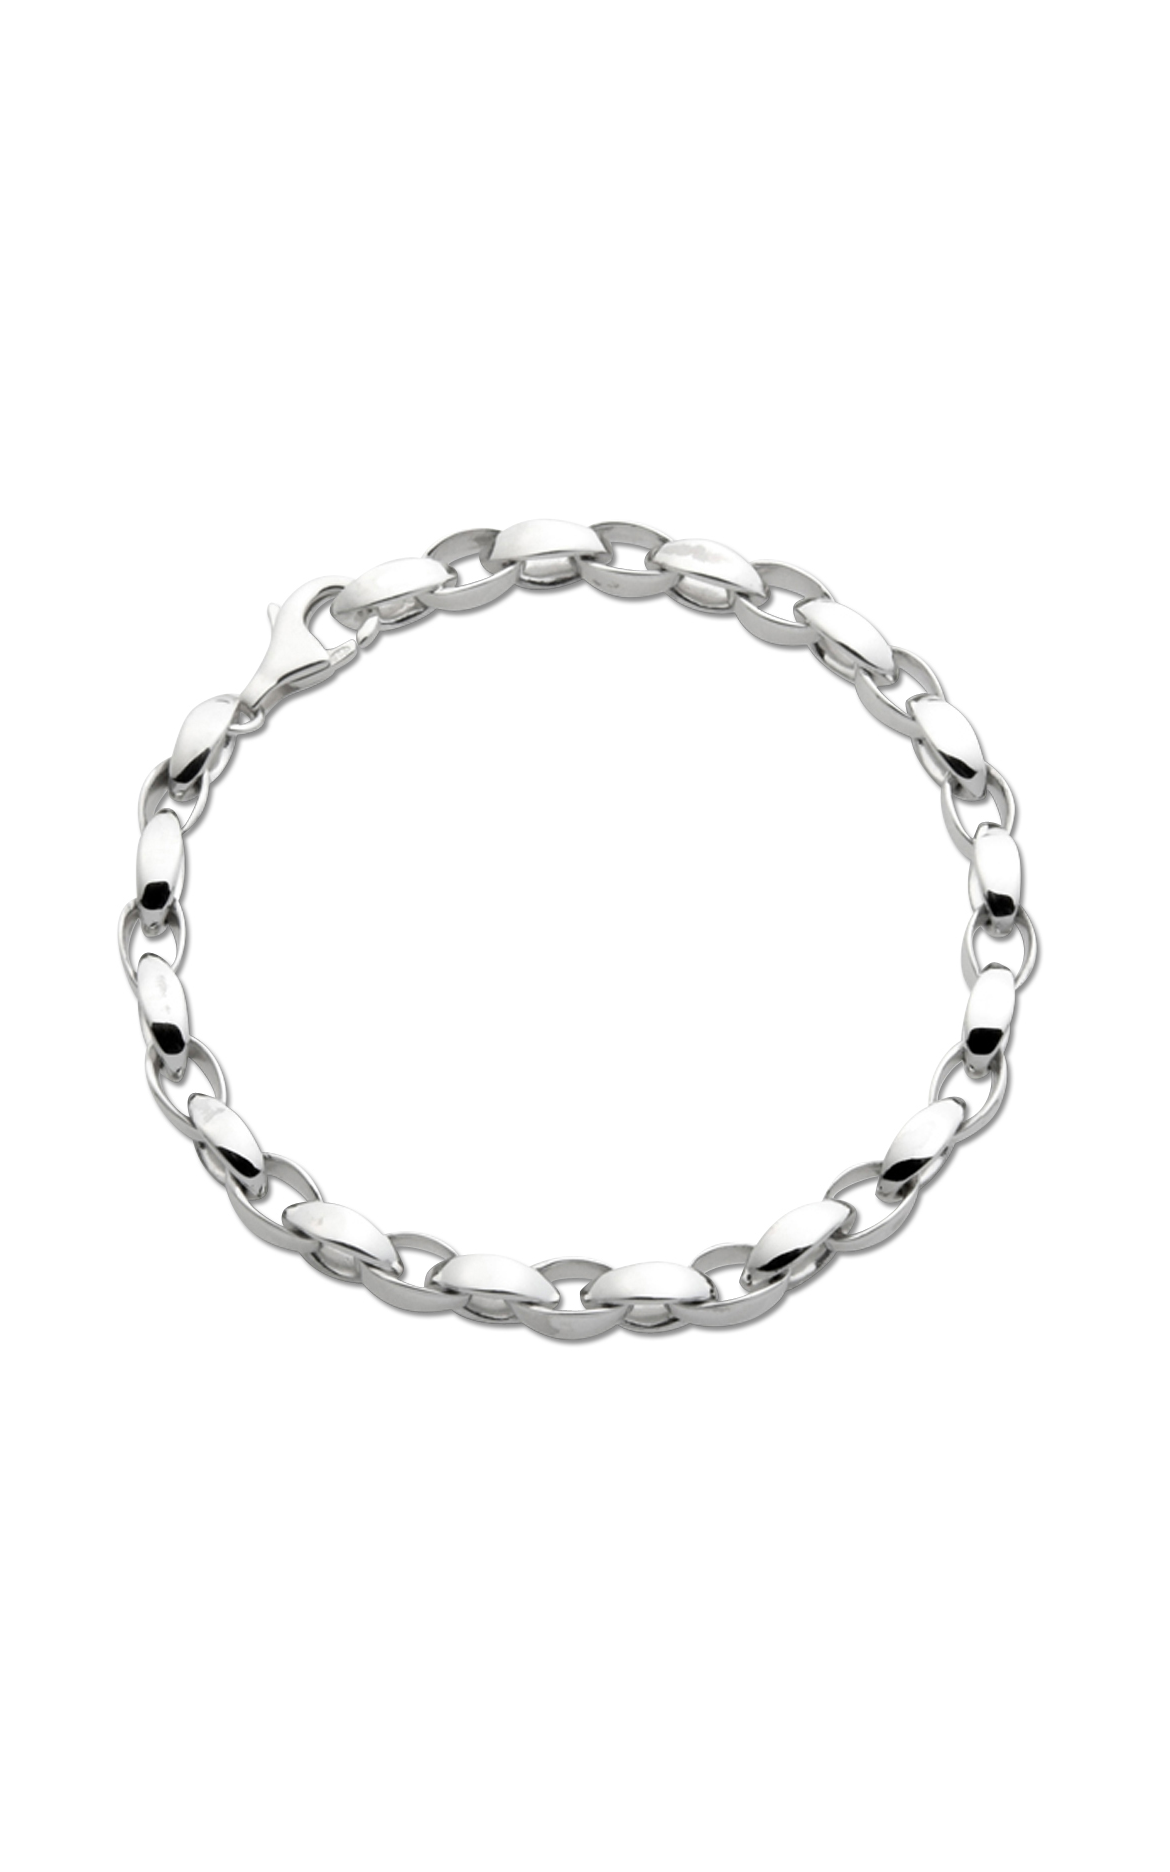 Zina Contemporary Bracelet A719 product image